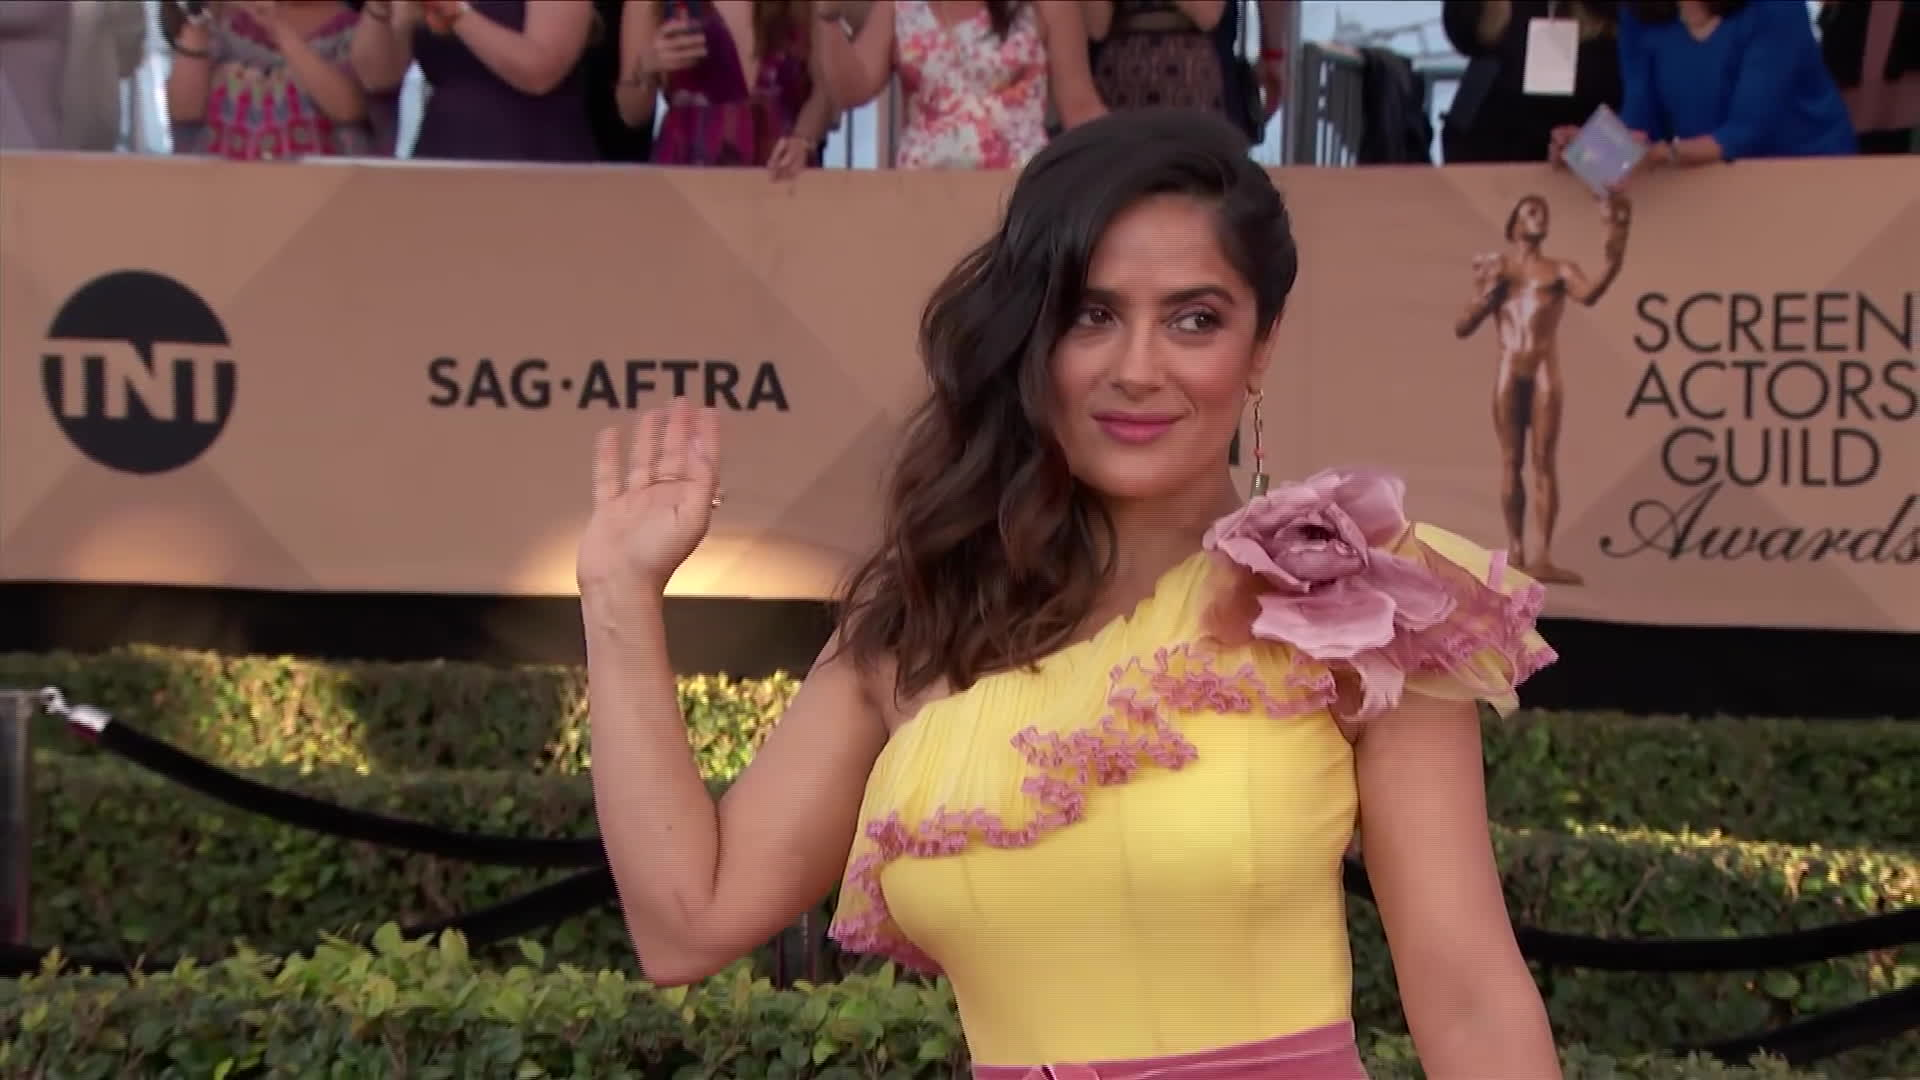 red carpet, sag awards, salma hayek, yellow dress, Salma Hayek SAG Awards 2017 GIFs